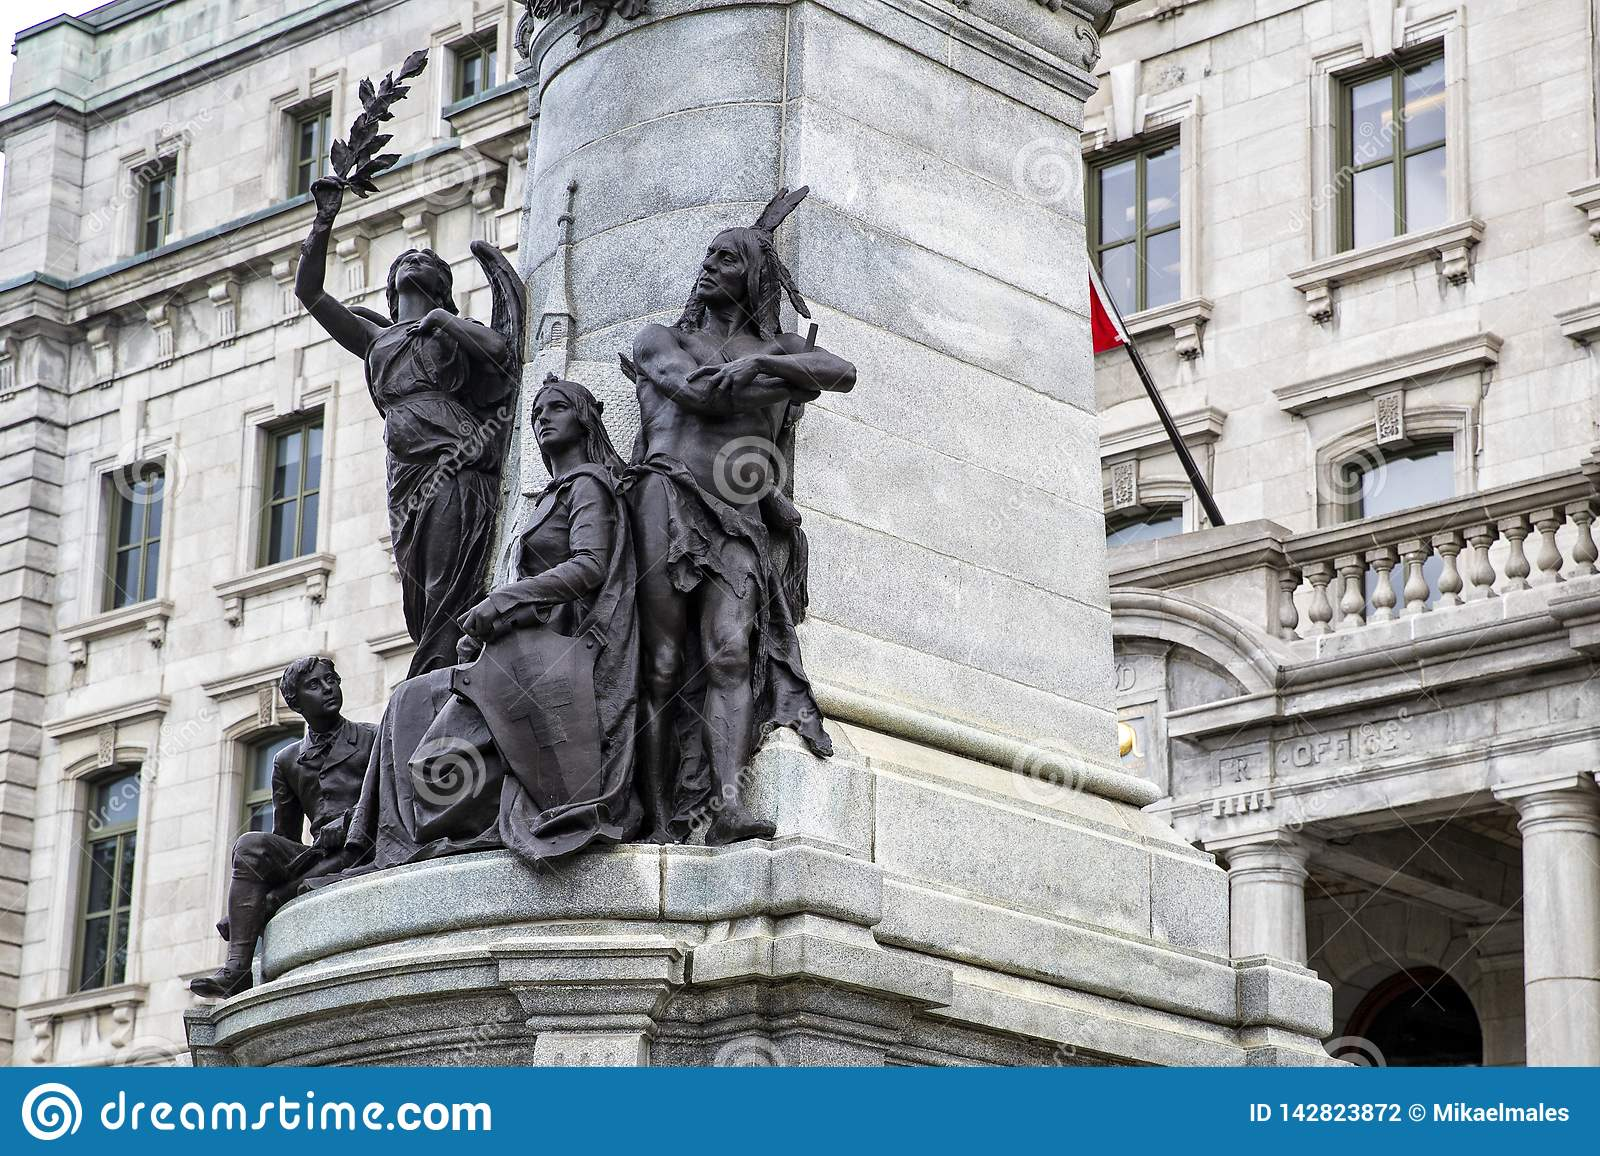 Statue of Francois Xavier de Montmorency Laval, with native indians and colonialist underneath